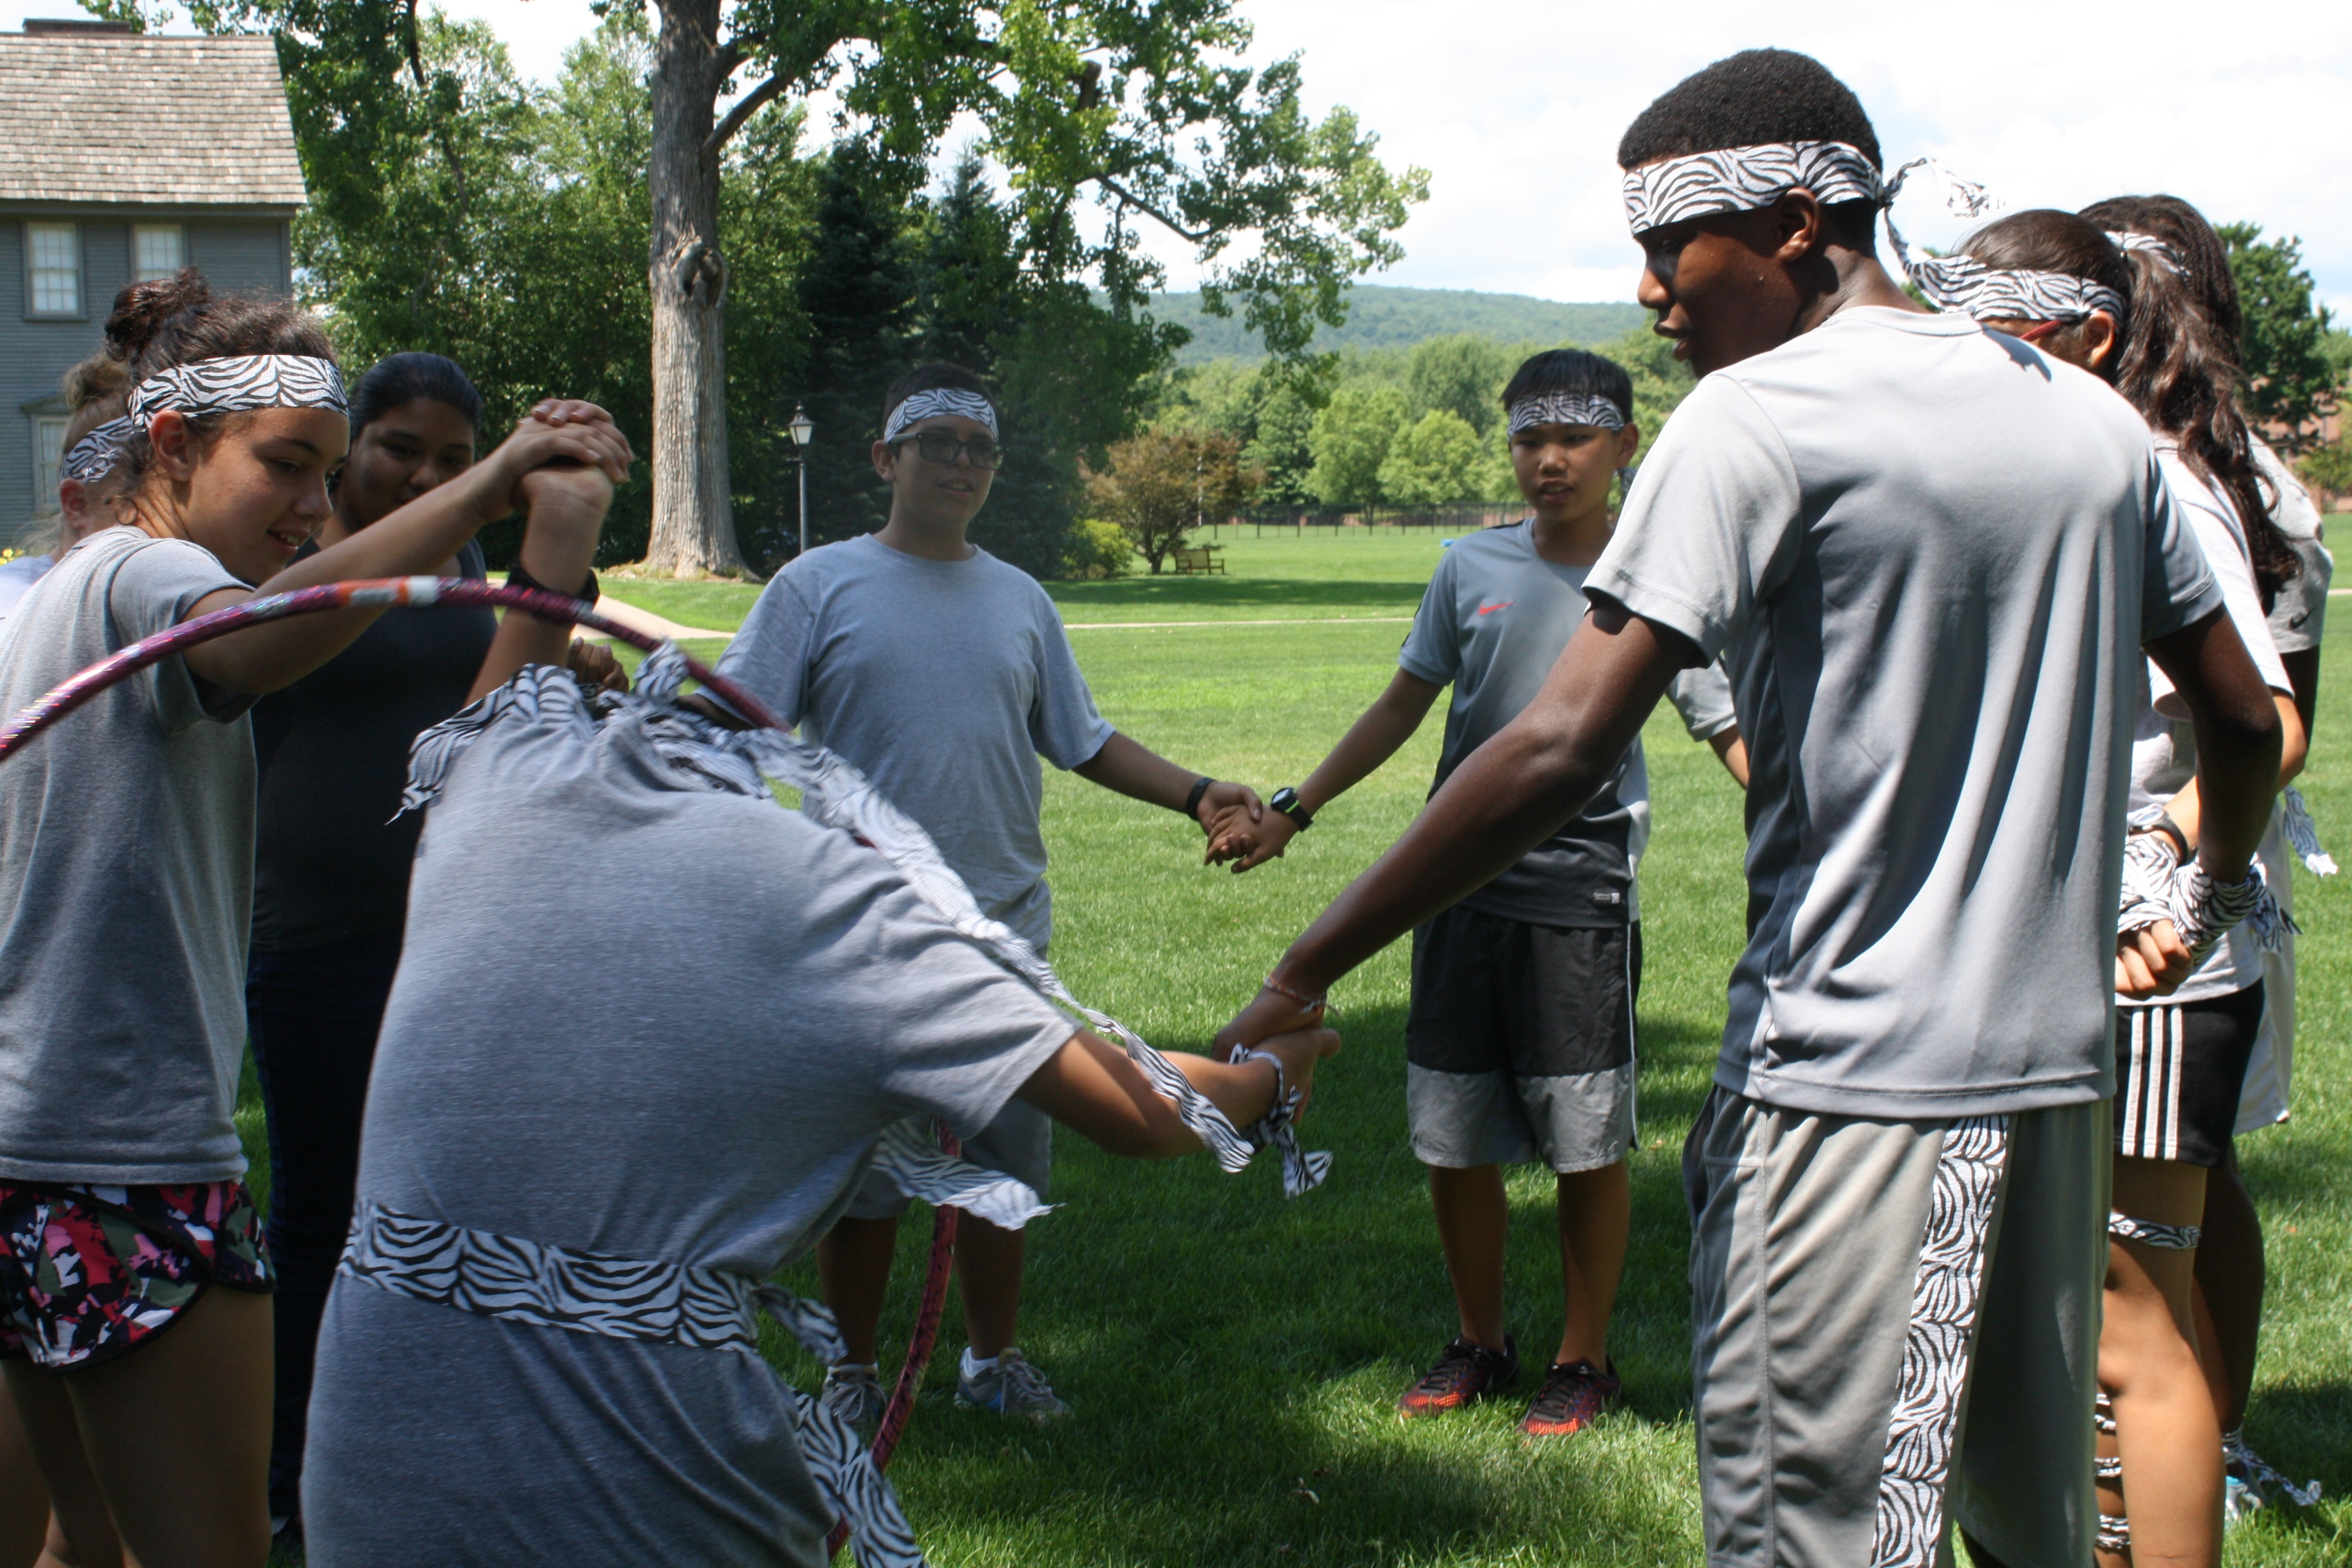 Midde school students laugh as they struggle to complete summer field games.